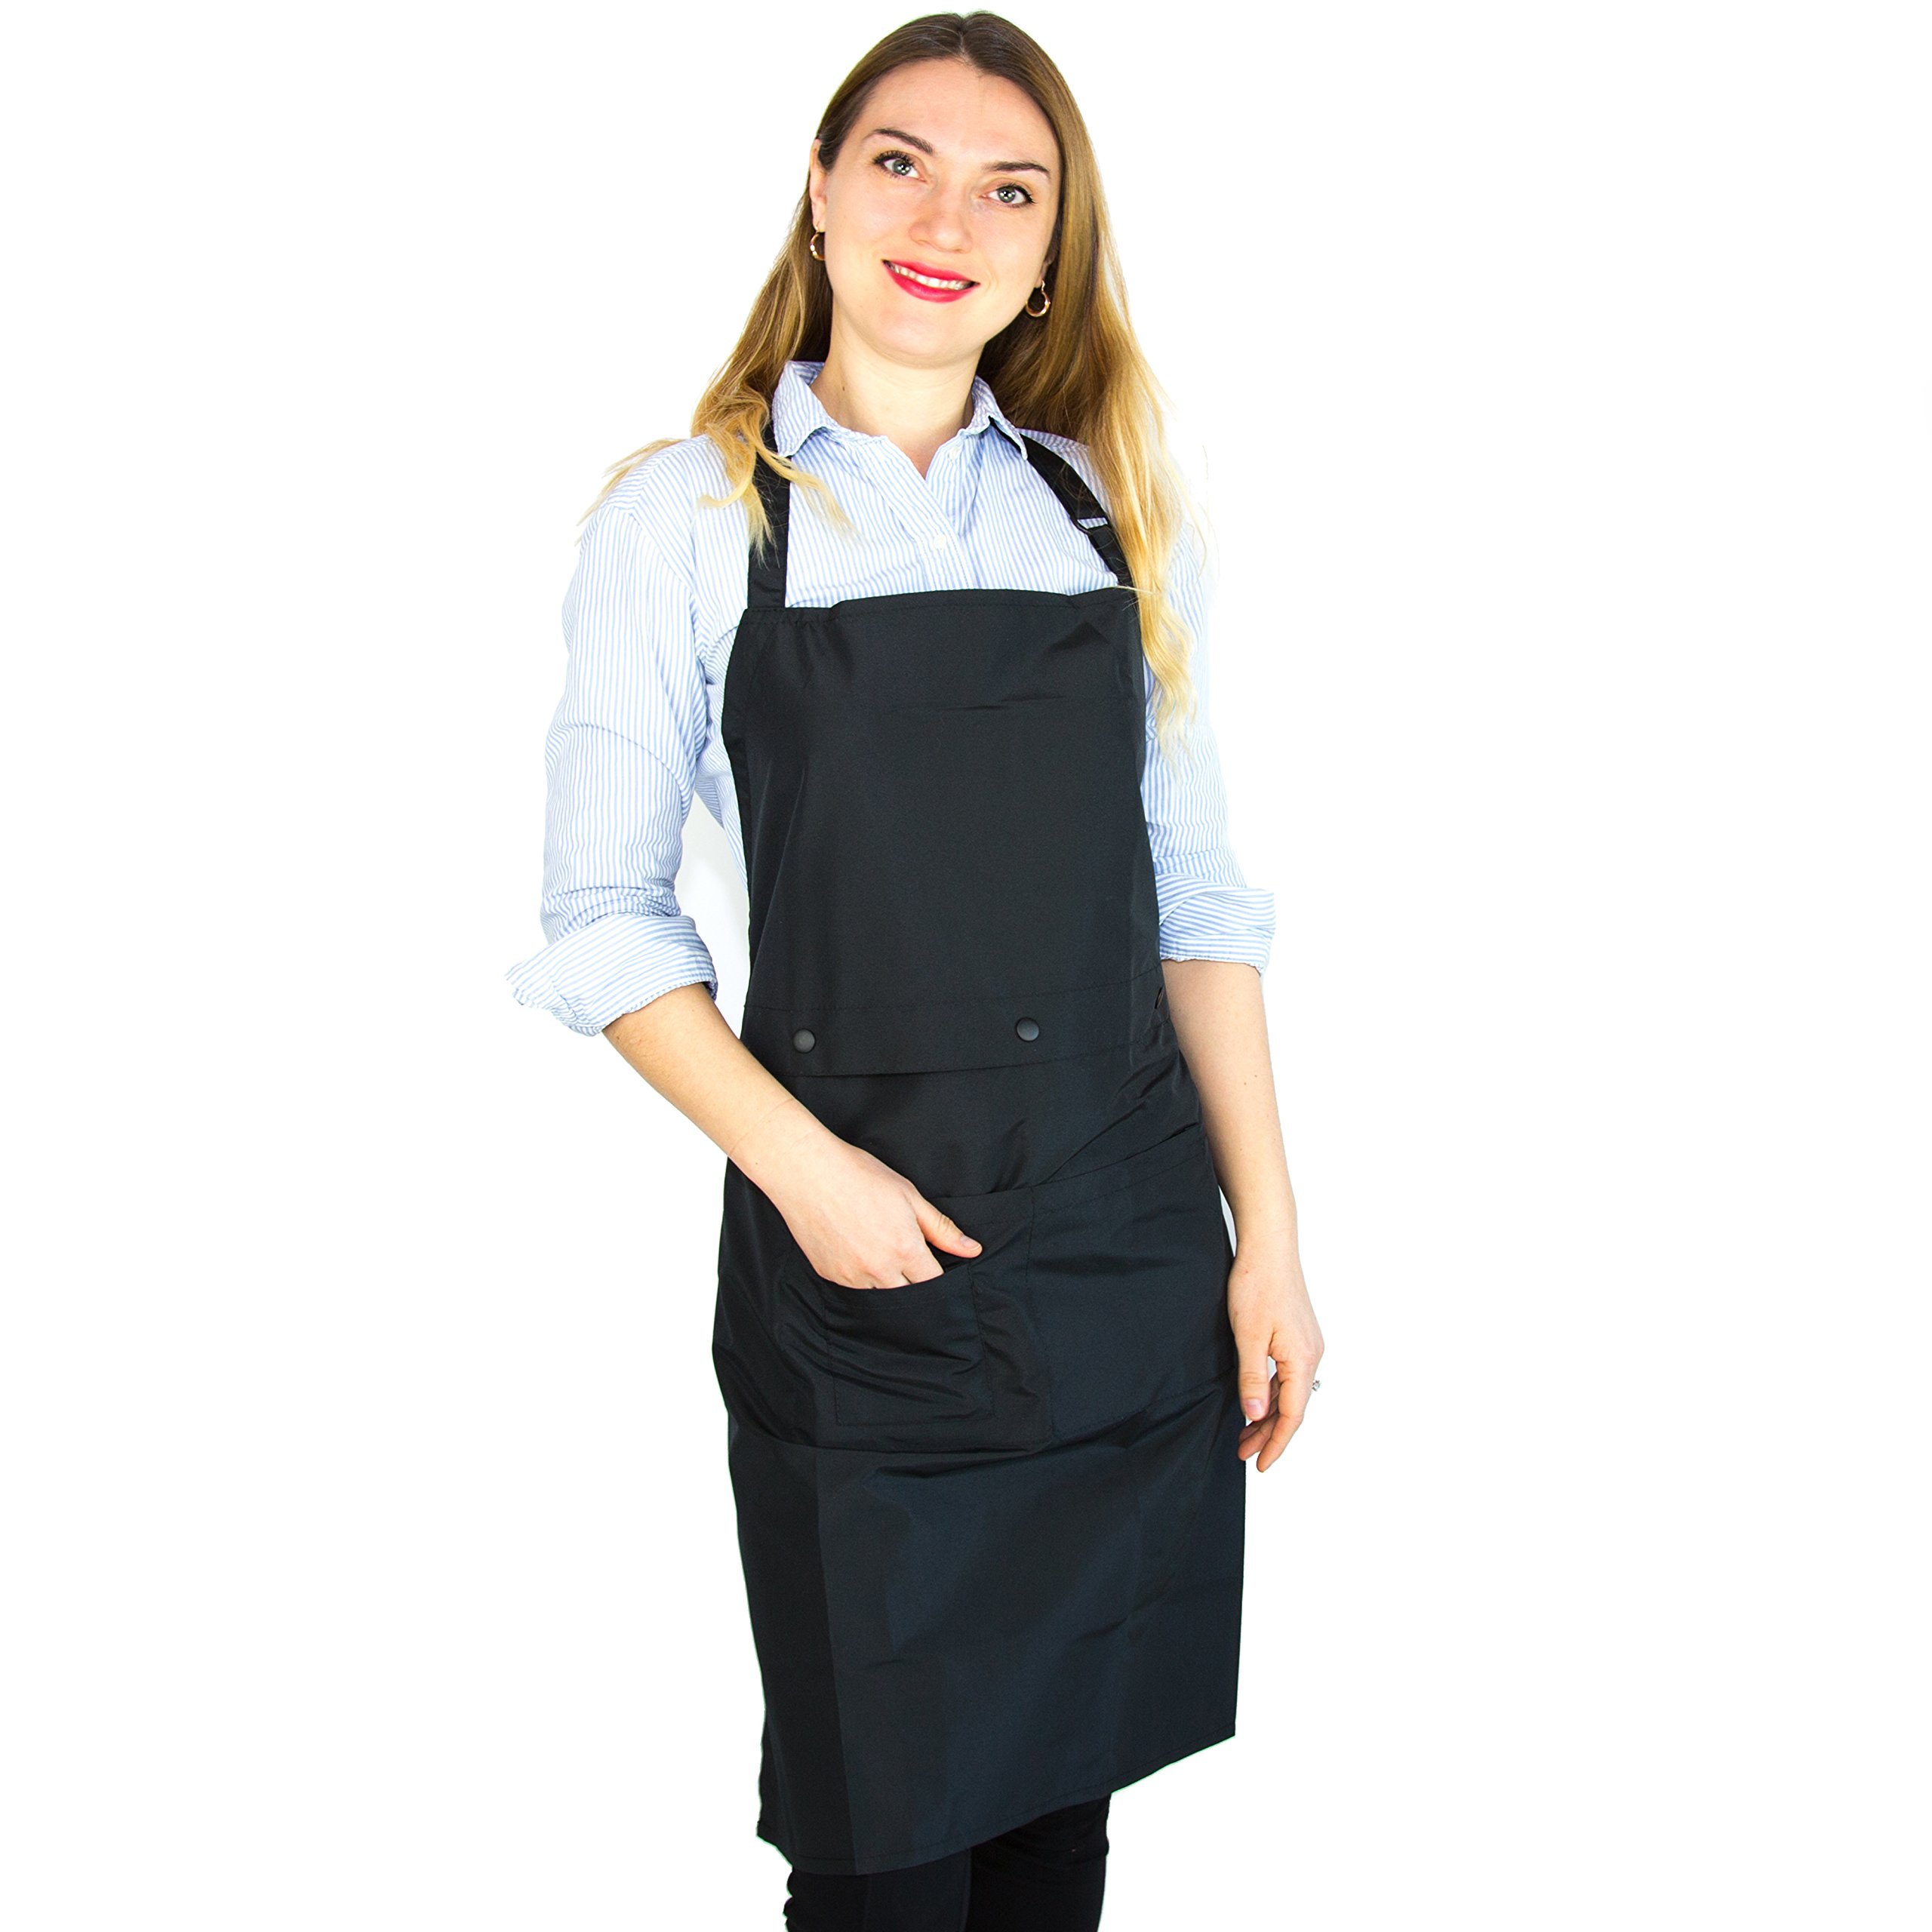 Two-Piece Hair Stylist Apron - Waterproof Apron - Protective PU Coating - Cosmetology Supplies - Nail Tech Apron - Cosmetologist Apron